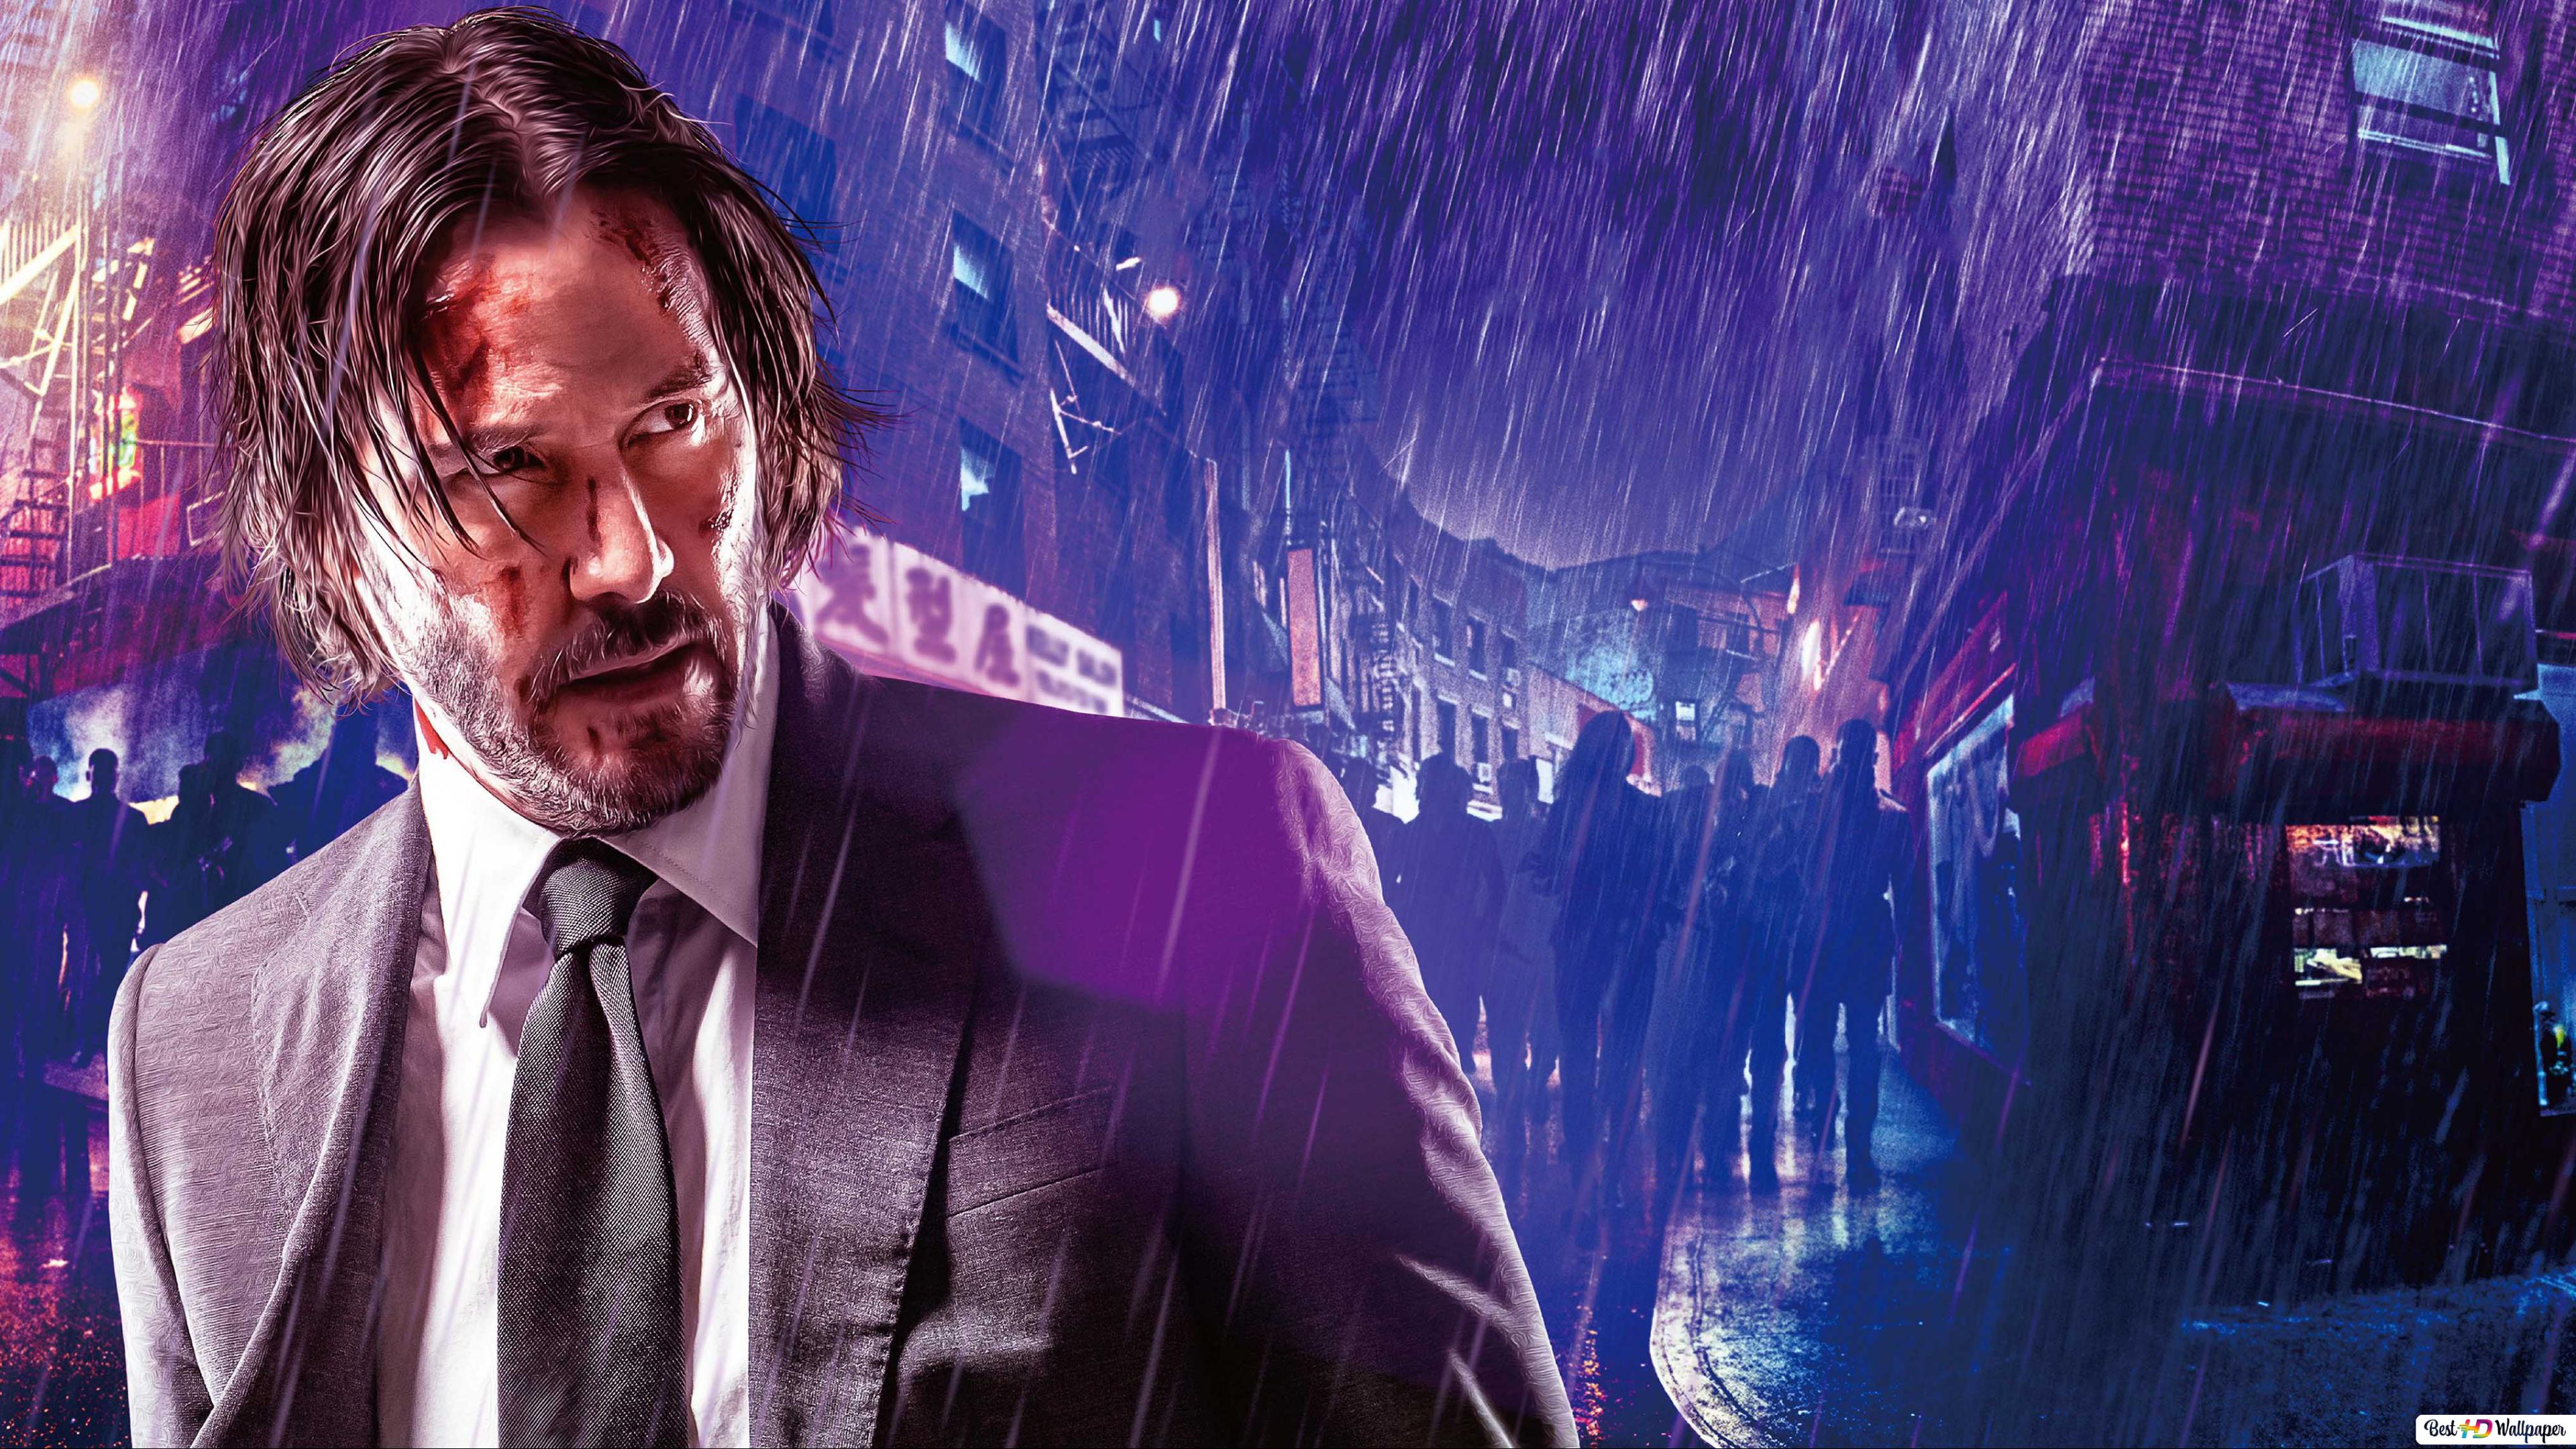 John Wick 3 Movie Hd Wallpaper Download